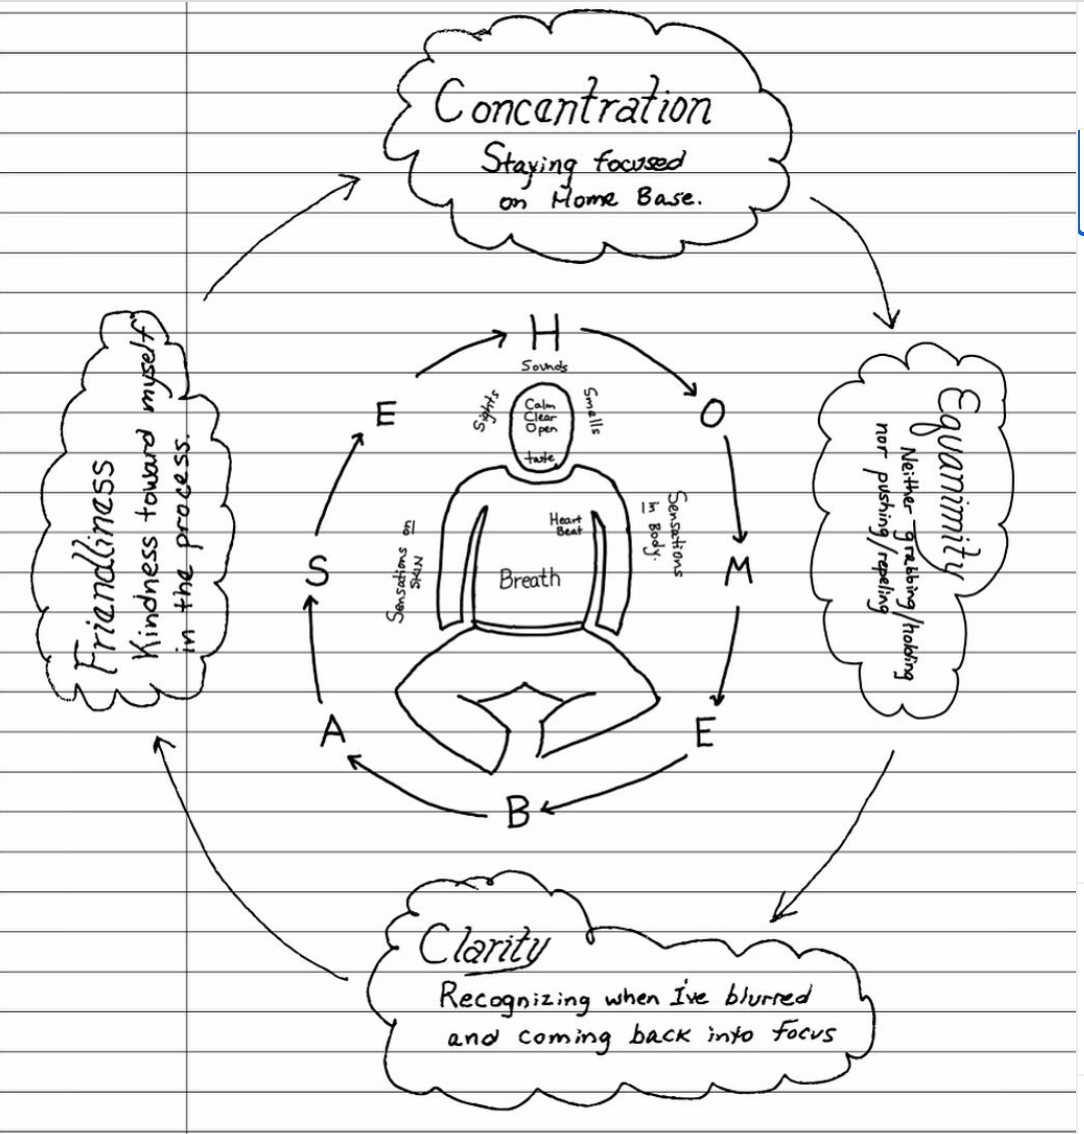 Hand-drawn illustration of Jeff Warren's meditation basics, emphasizing concentration, equanimity (acceptance of what is), clarity, and friendliness (now updated to be caring). From his instagram page.